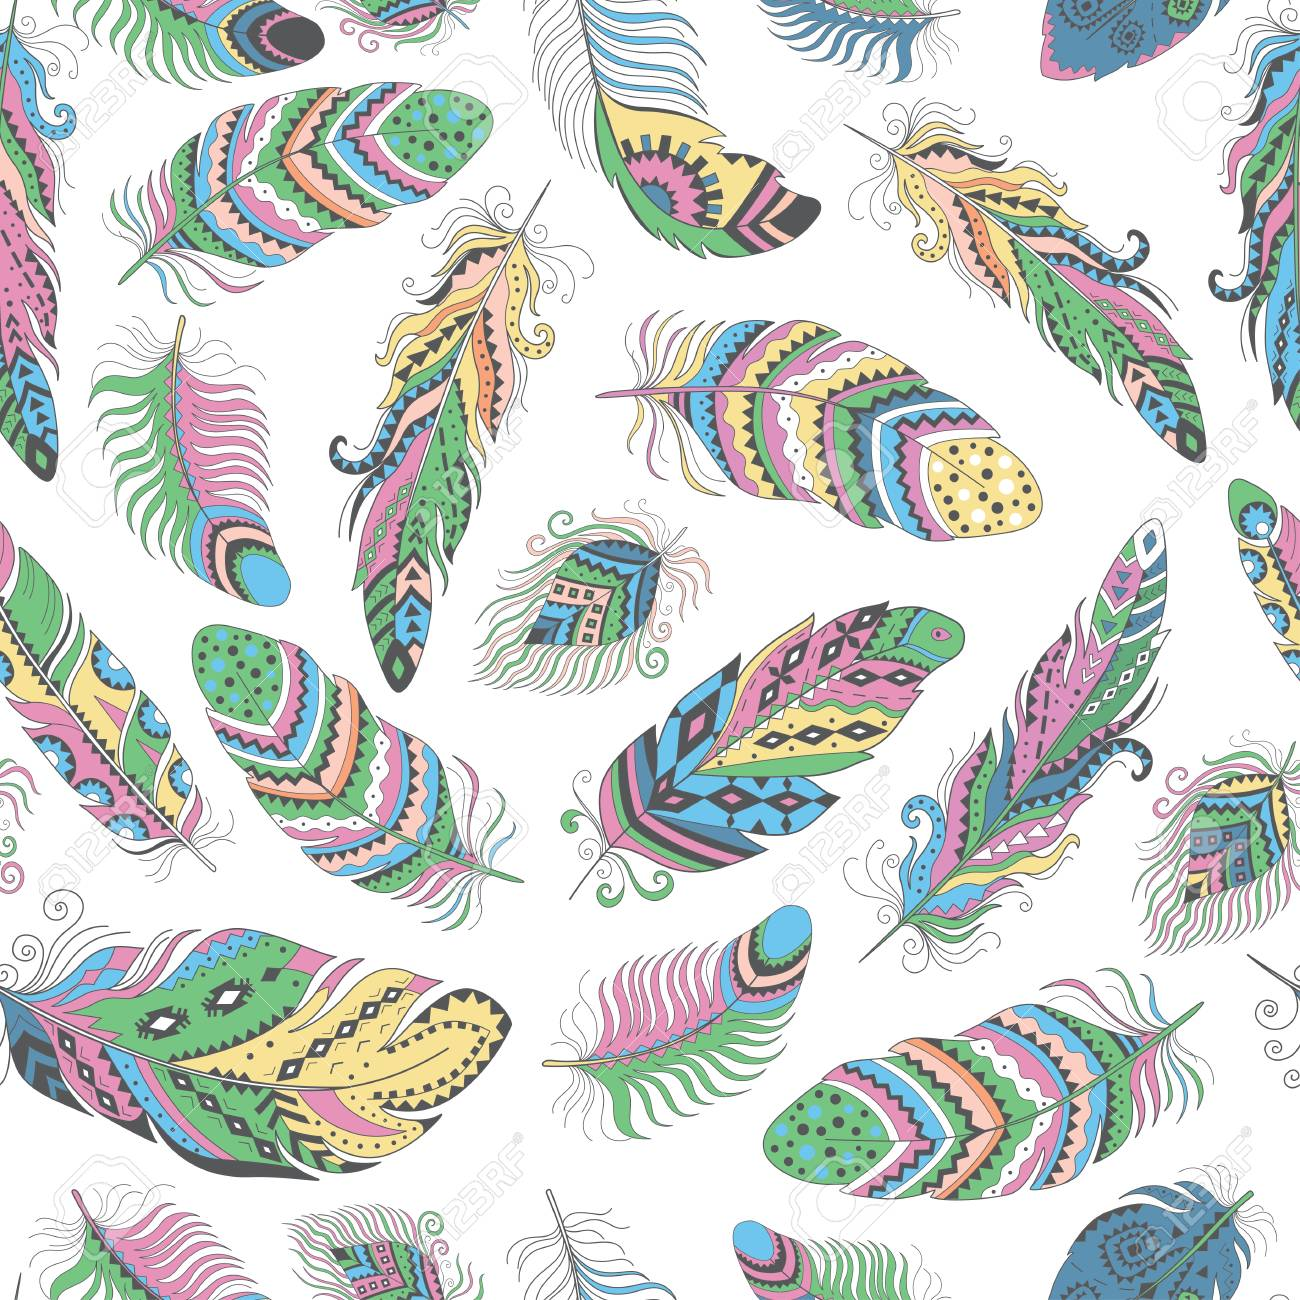 Feathers Boho Seamless Pattern Tribal Ethnic Background Texture 1300x1300